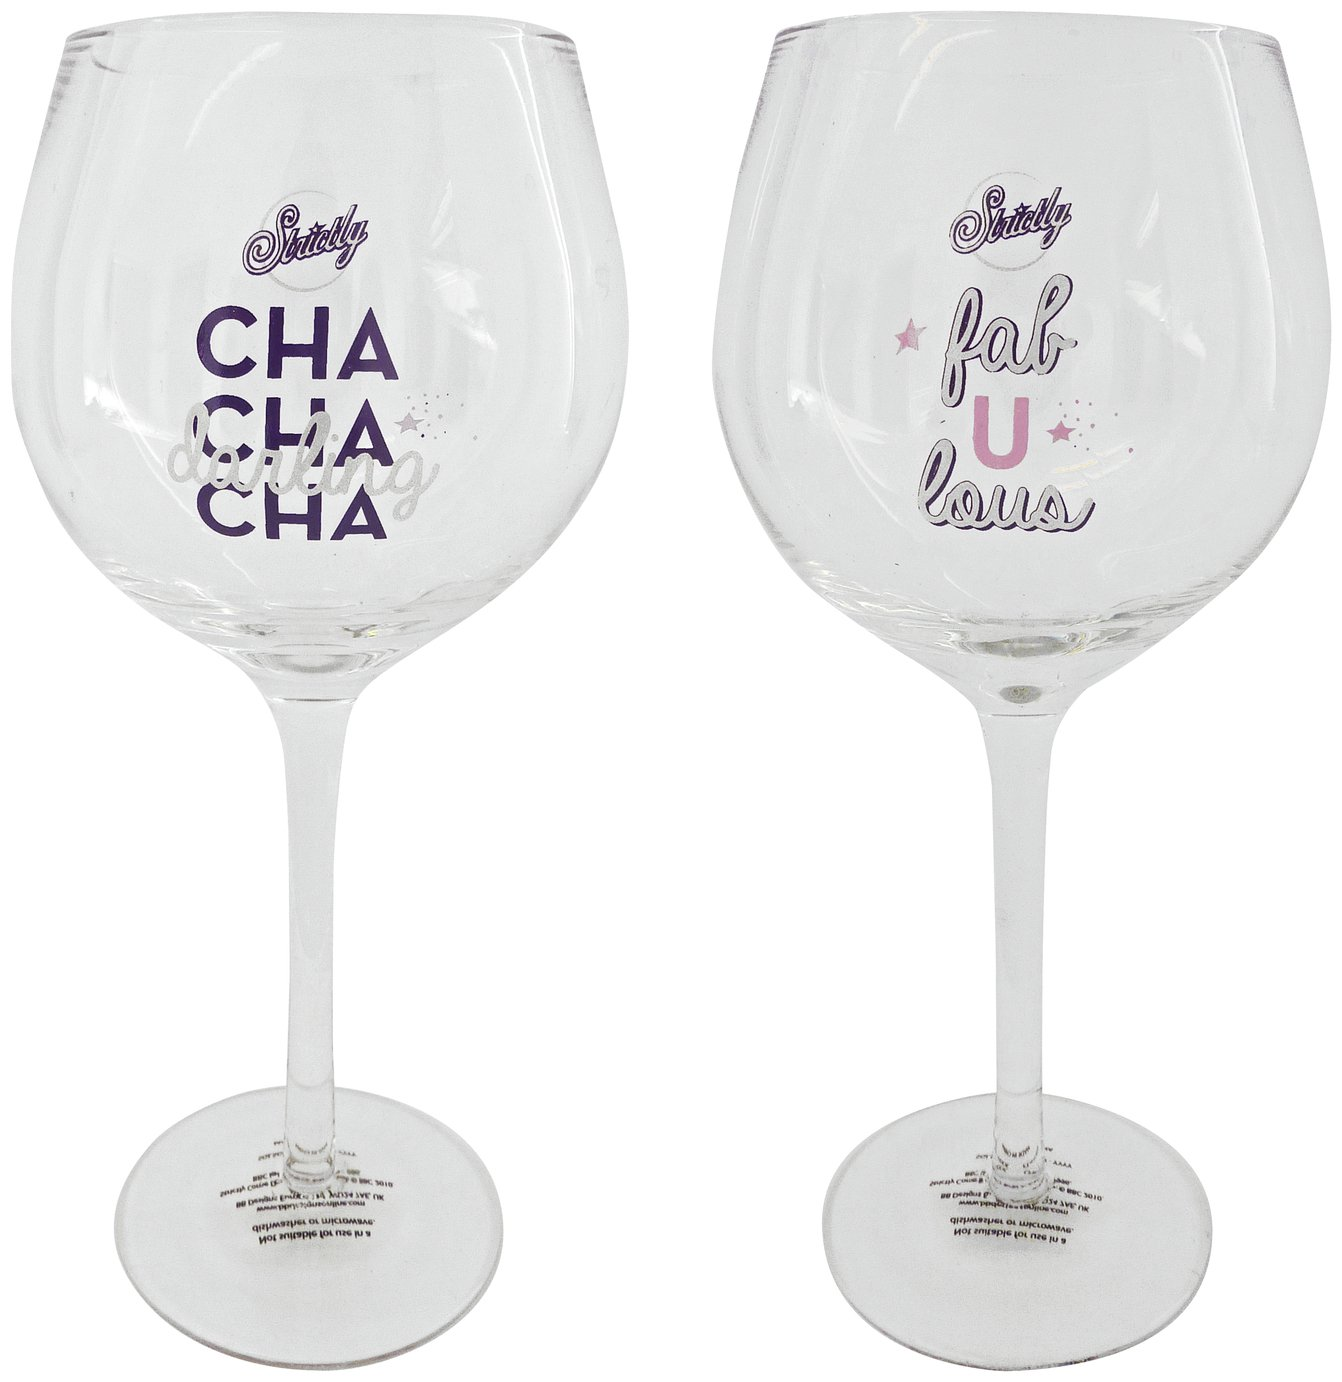 Strictly Come Dancing Set of 2 Gin Glasses